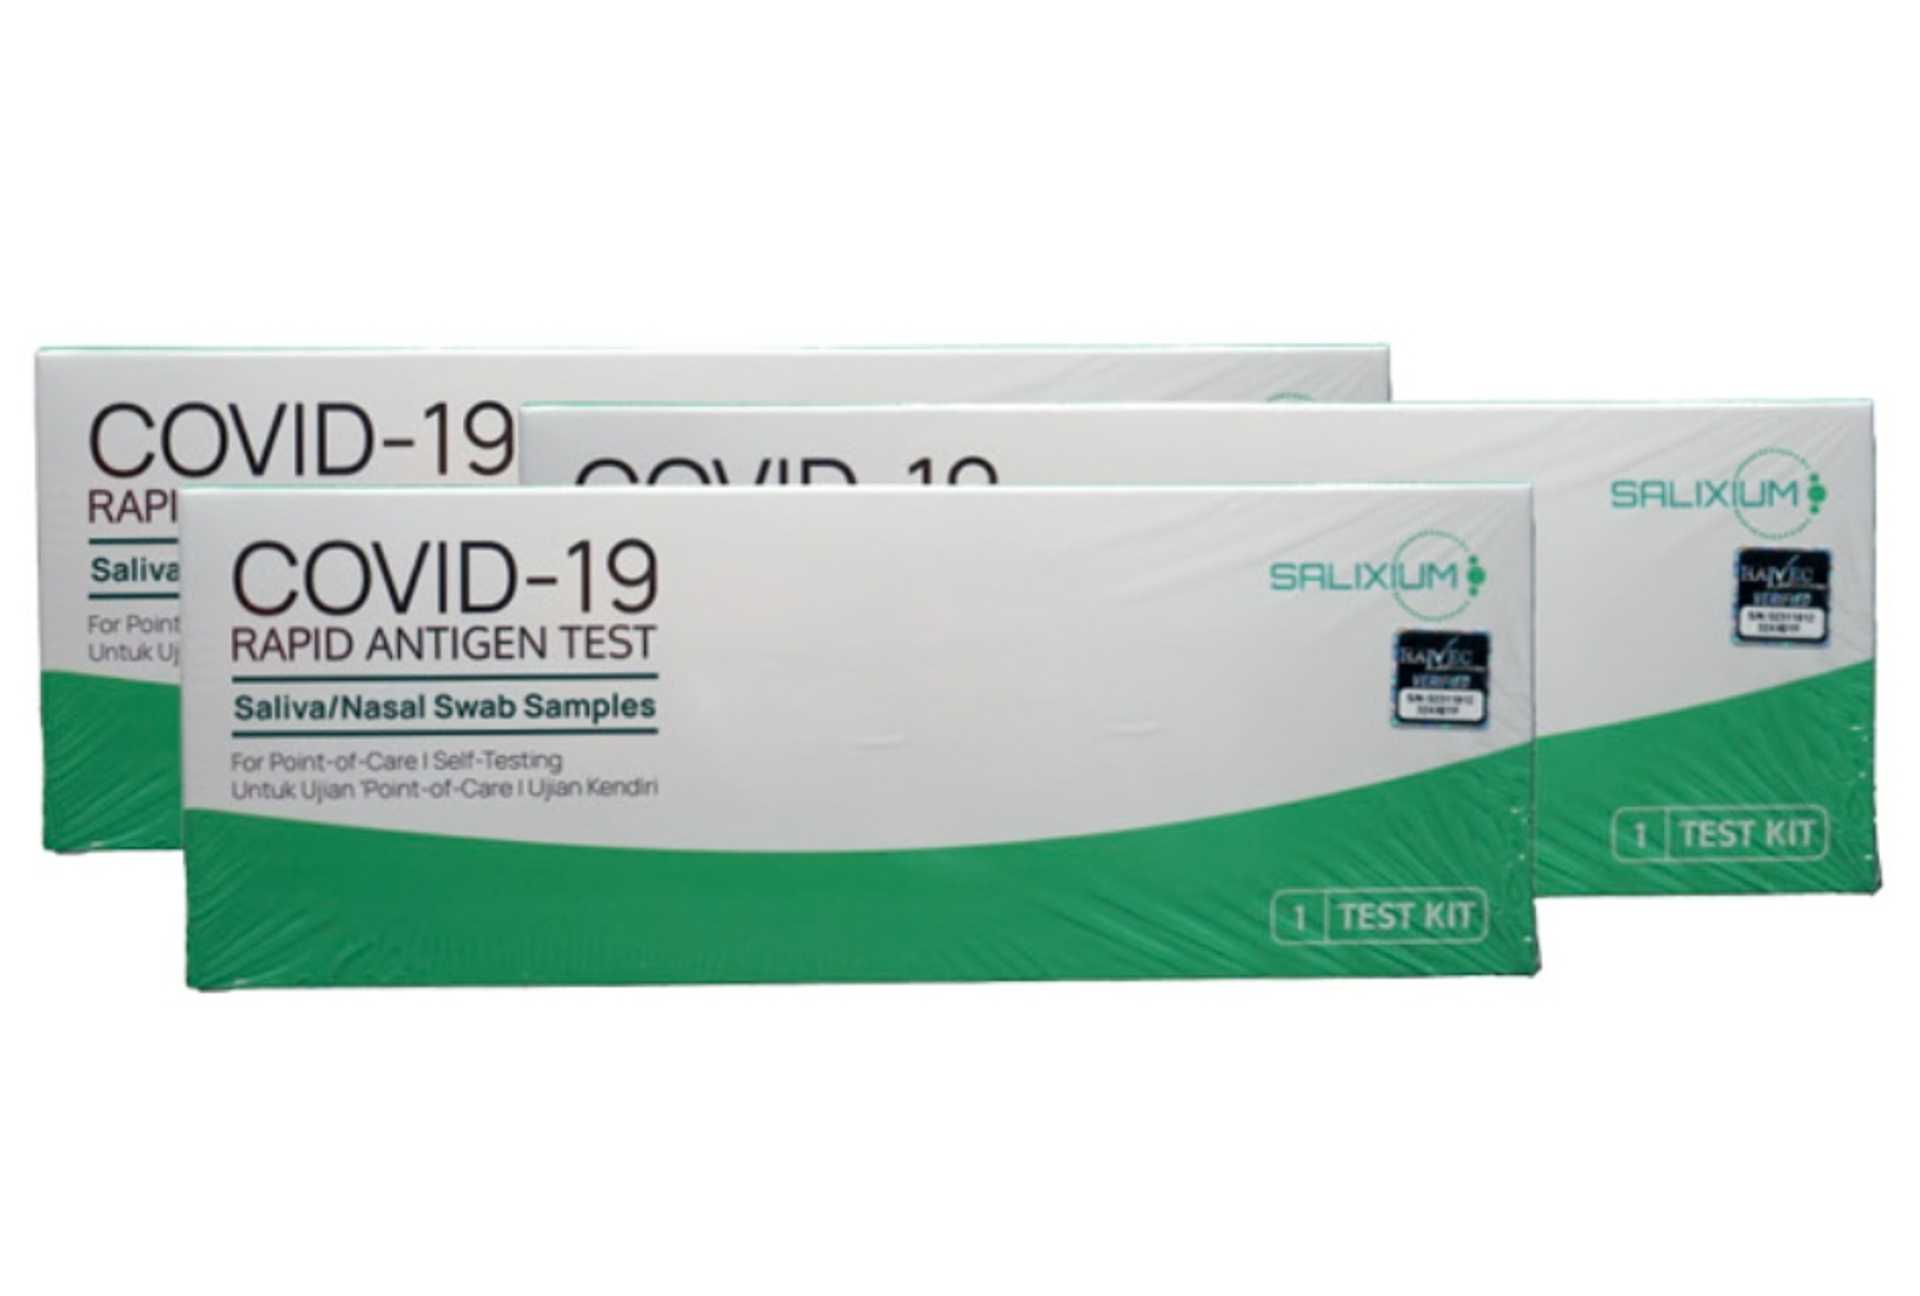 Where to buy COVID-19 self-test kit in Malaysia